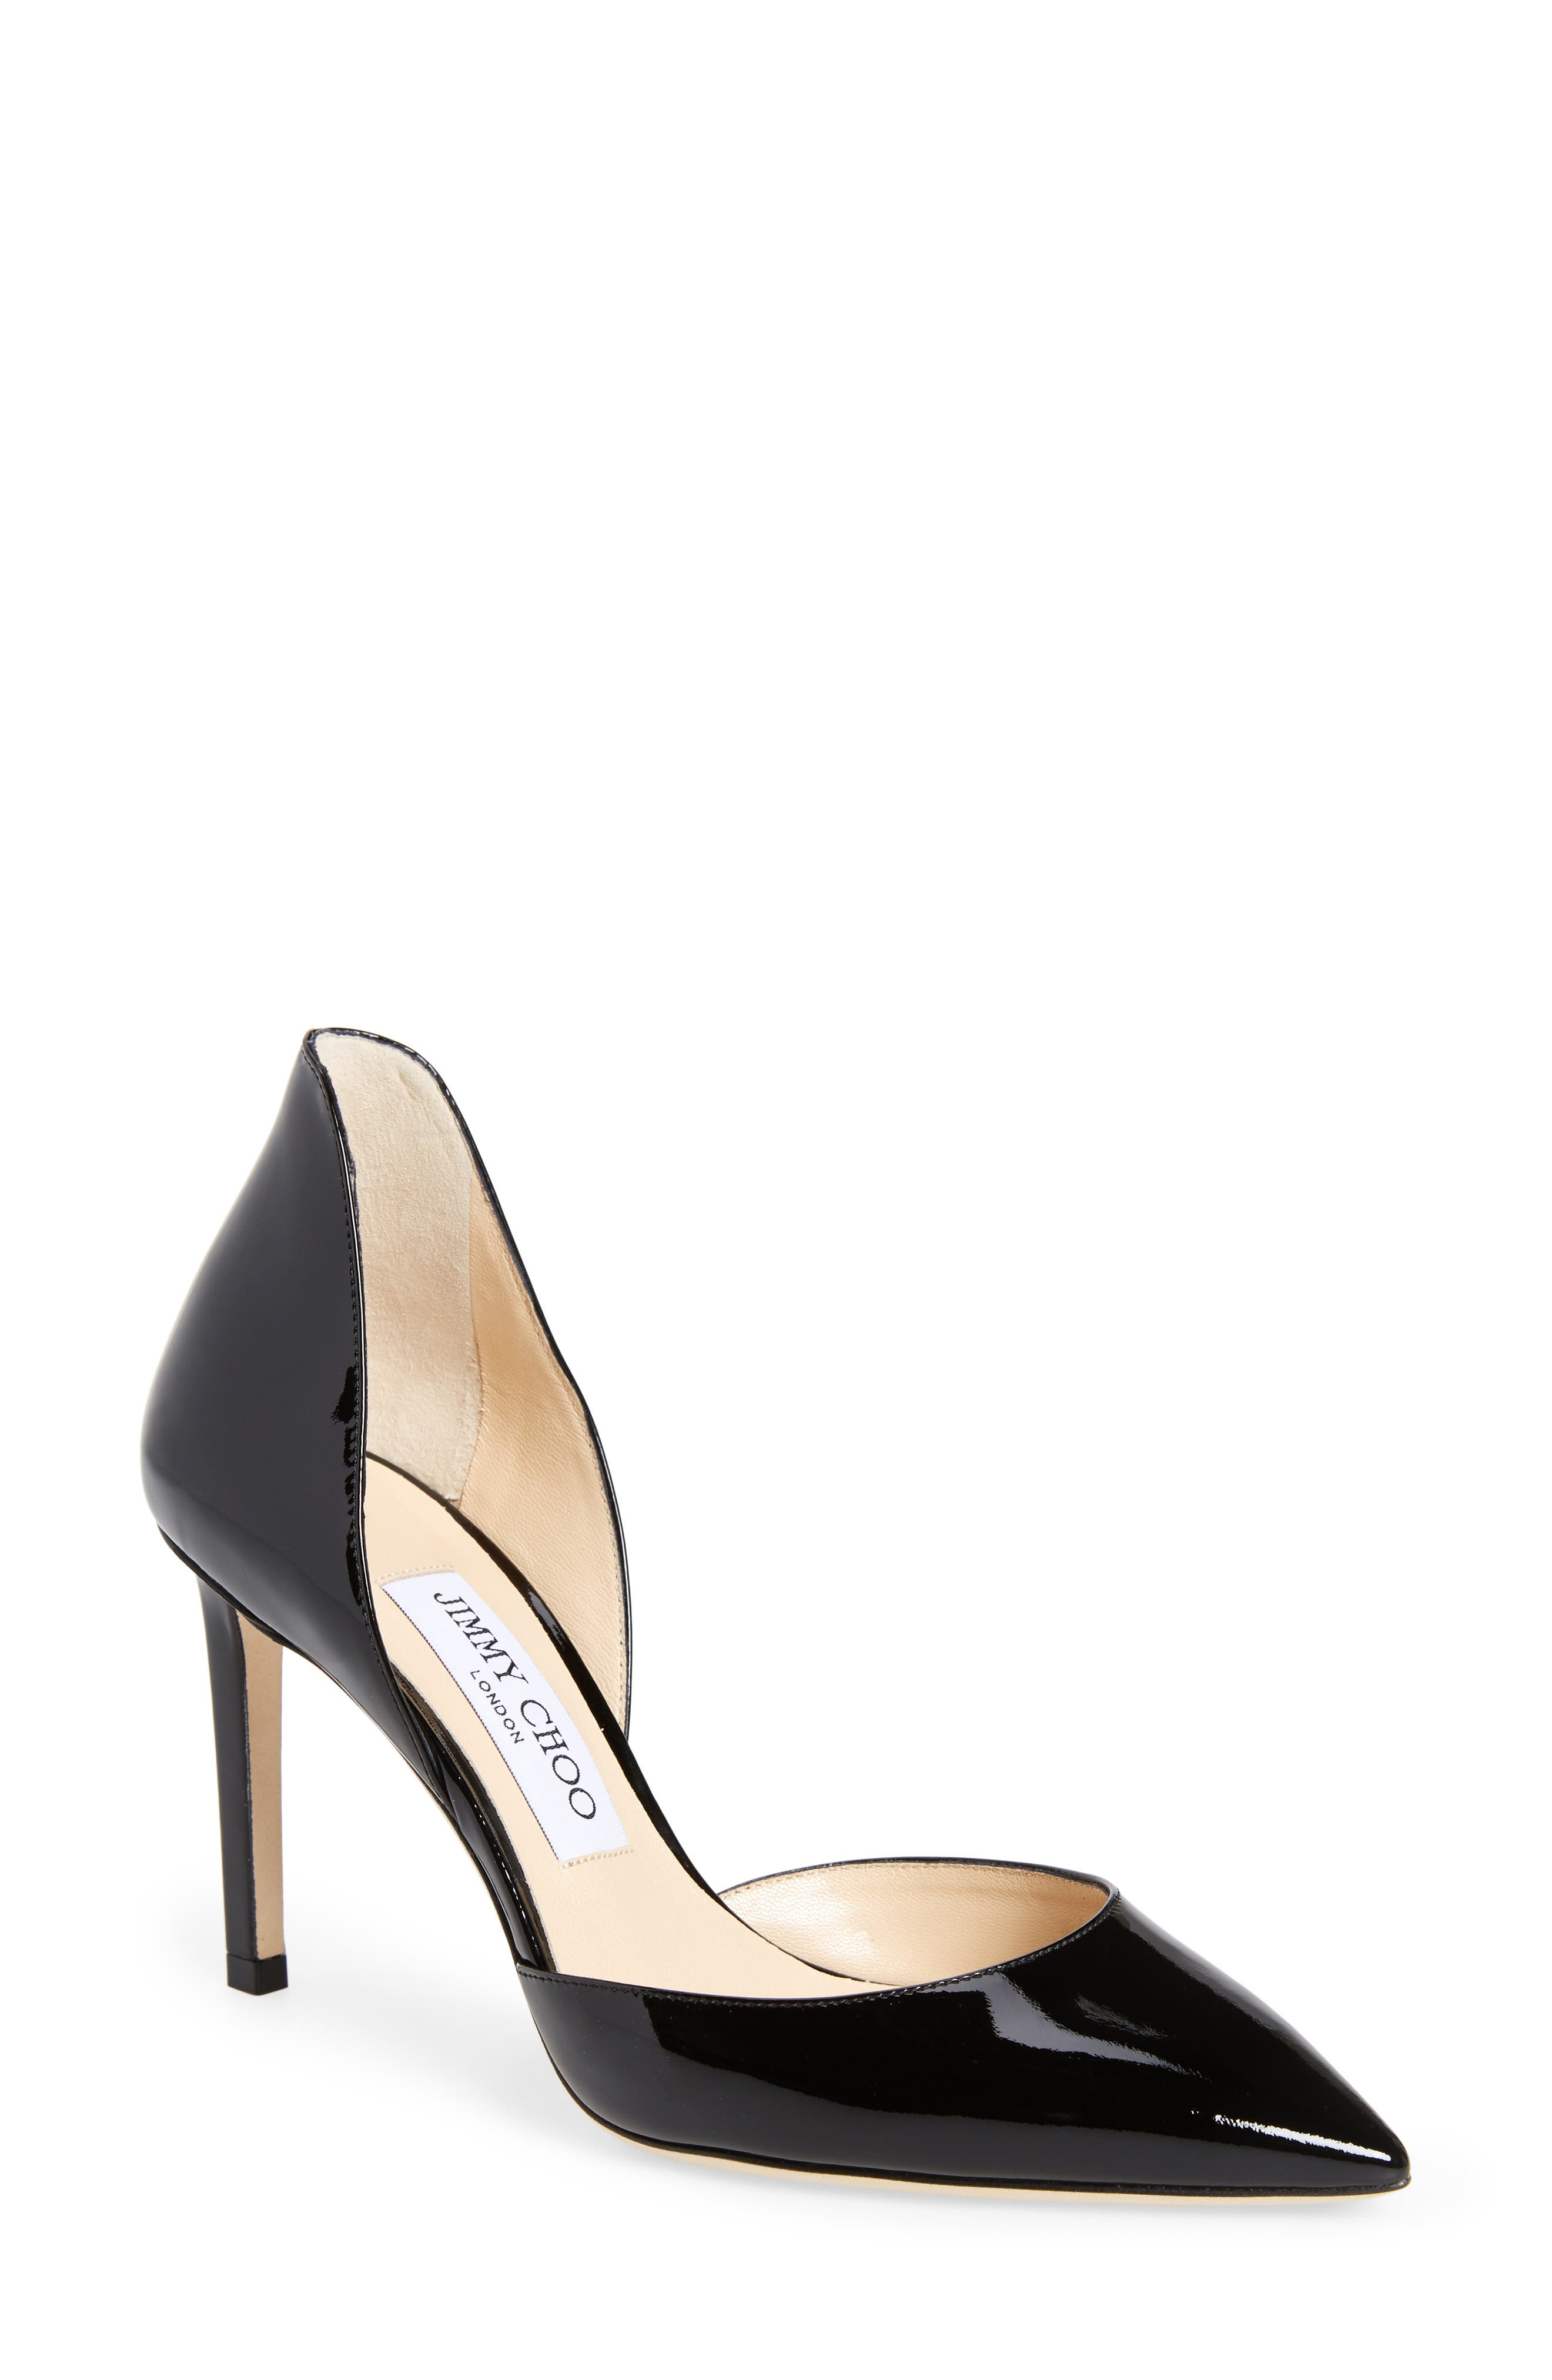 Alternate Image 1 Selected - Jimmy Choo Liz d'Orsay Pump (Women)